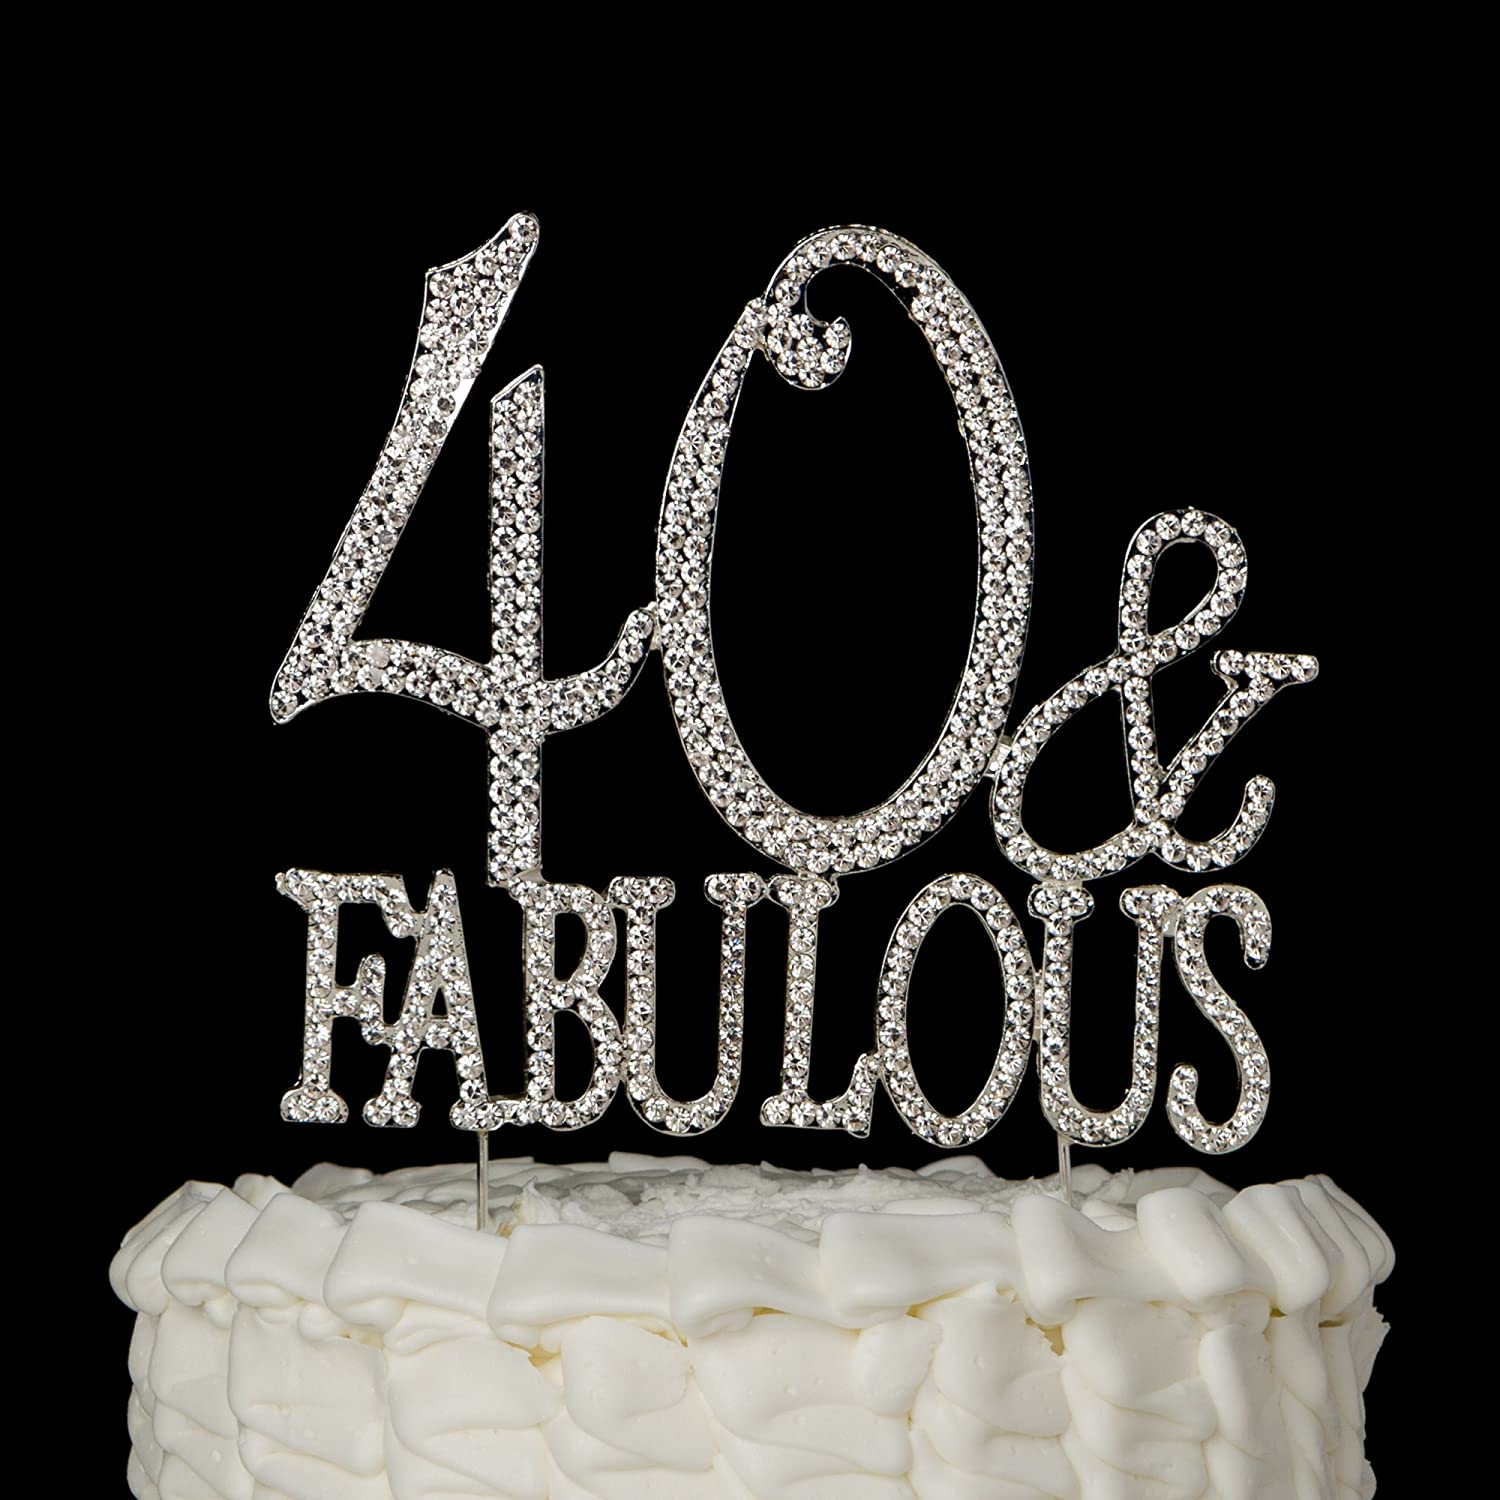 Amazoncom Ella Celebration 40 Fabulous Cake Topper for 40th